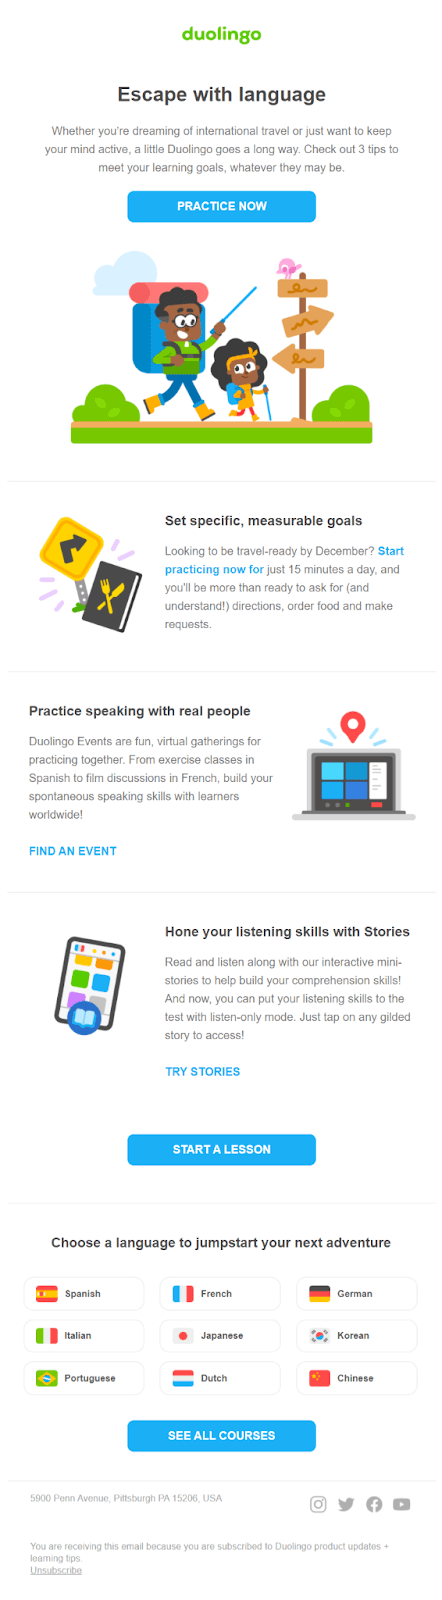 Onboarding email example Duolingo #9